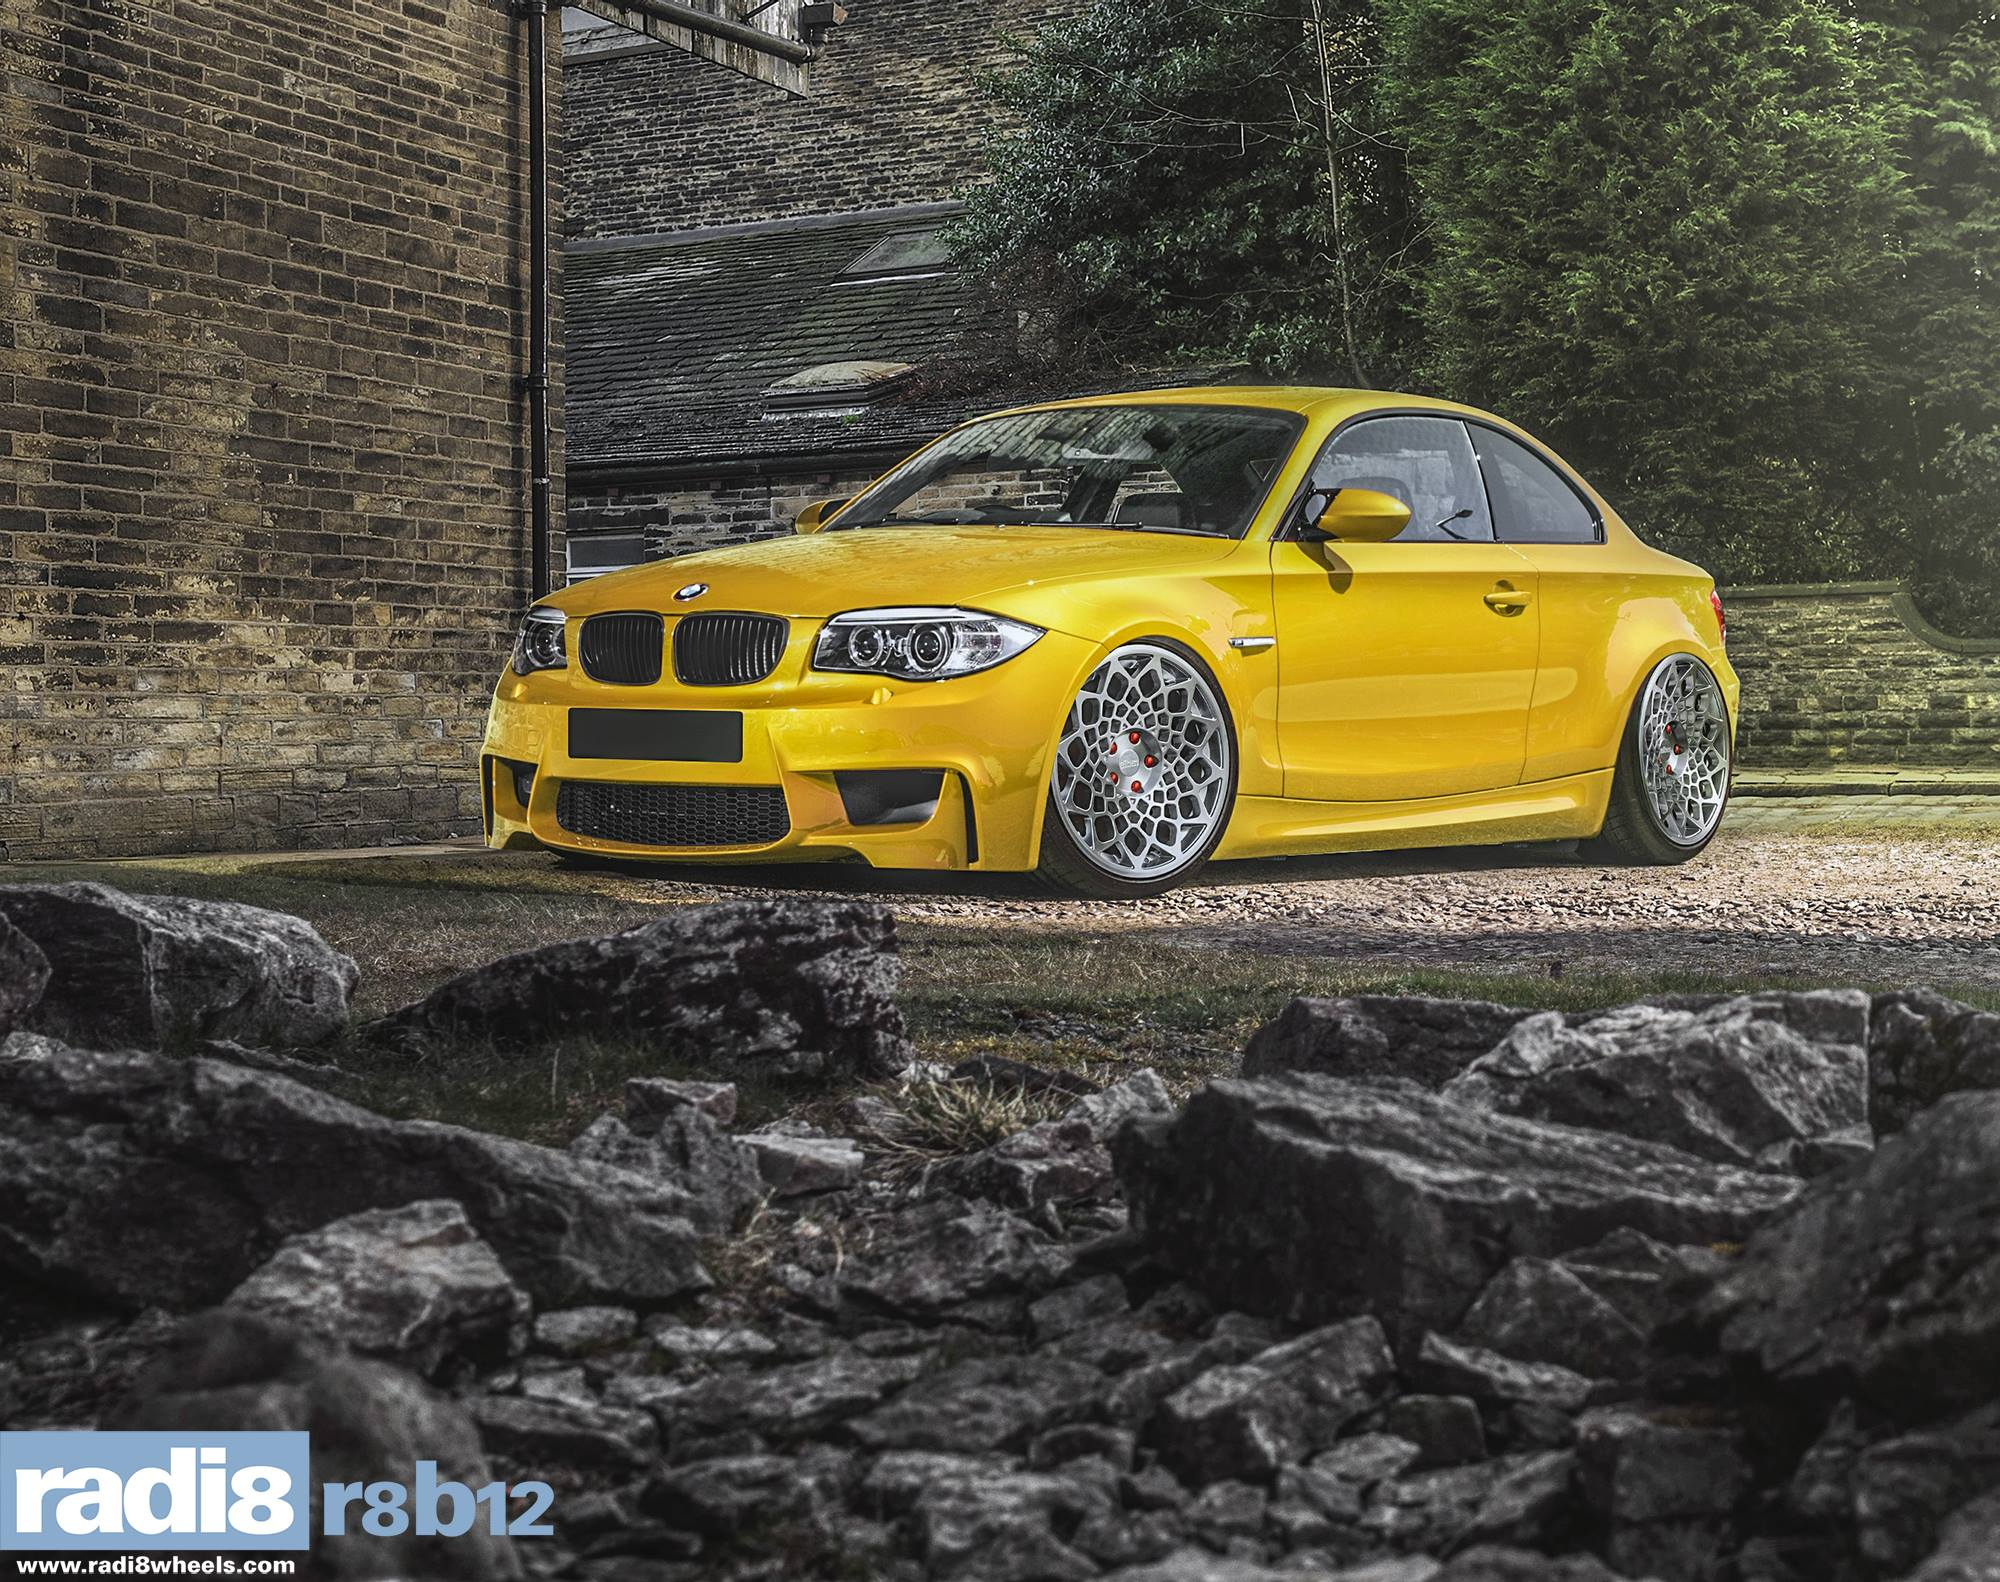 Radi8 R8B12 Wheels - BMW 1M